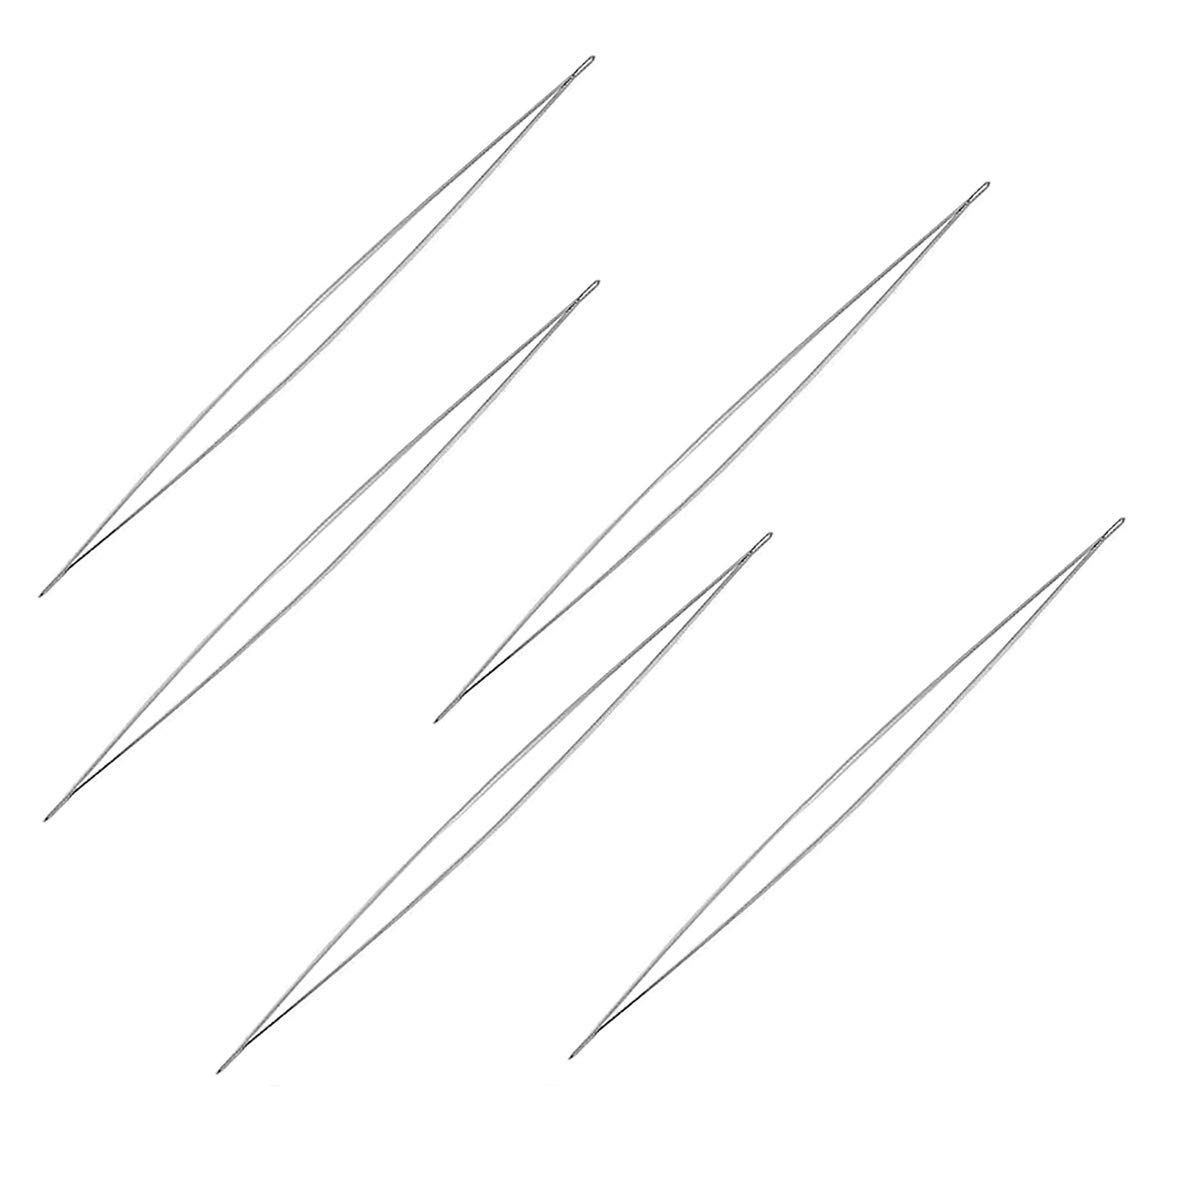 Exceart 10pcs Beading Needle Kit with Storage Bottle and Bead Threader Large Eye Needles for DIY Craft Sewing Jewelry Making 5.8//7.6//10.2//11.5//12.8cm